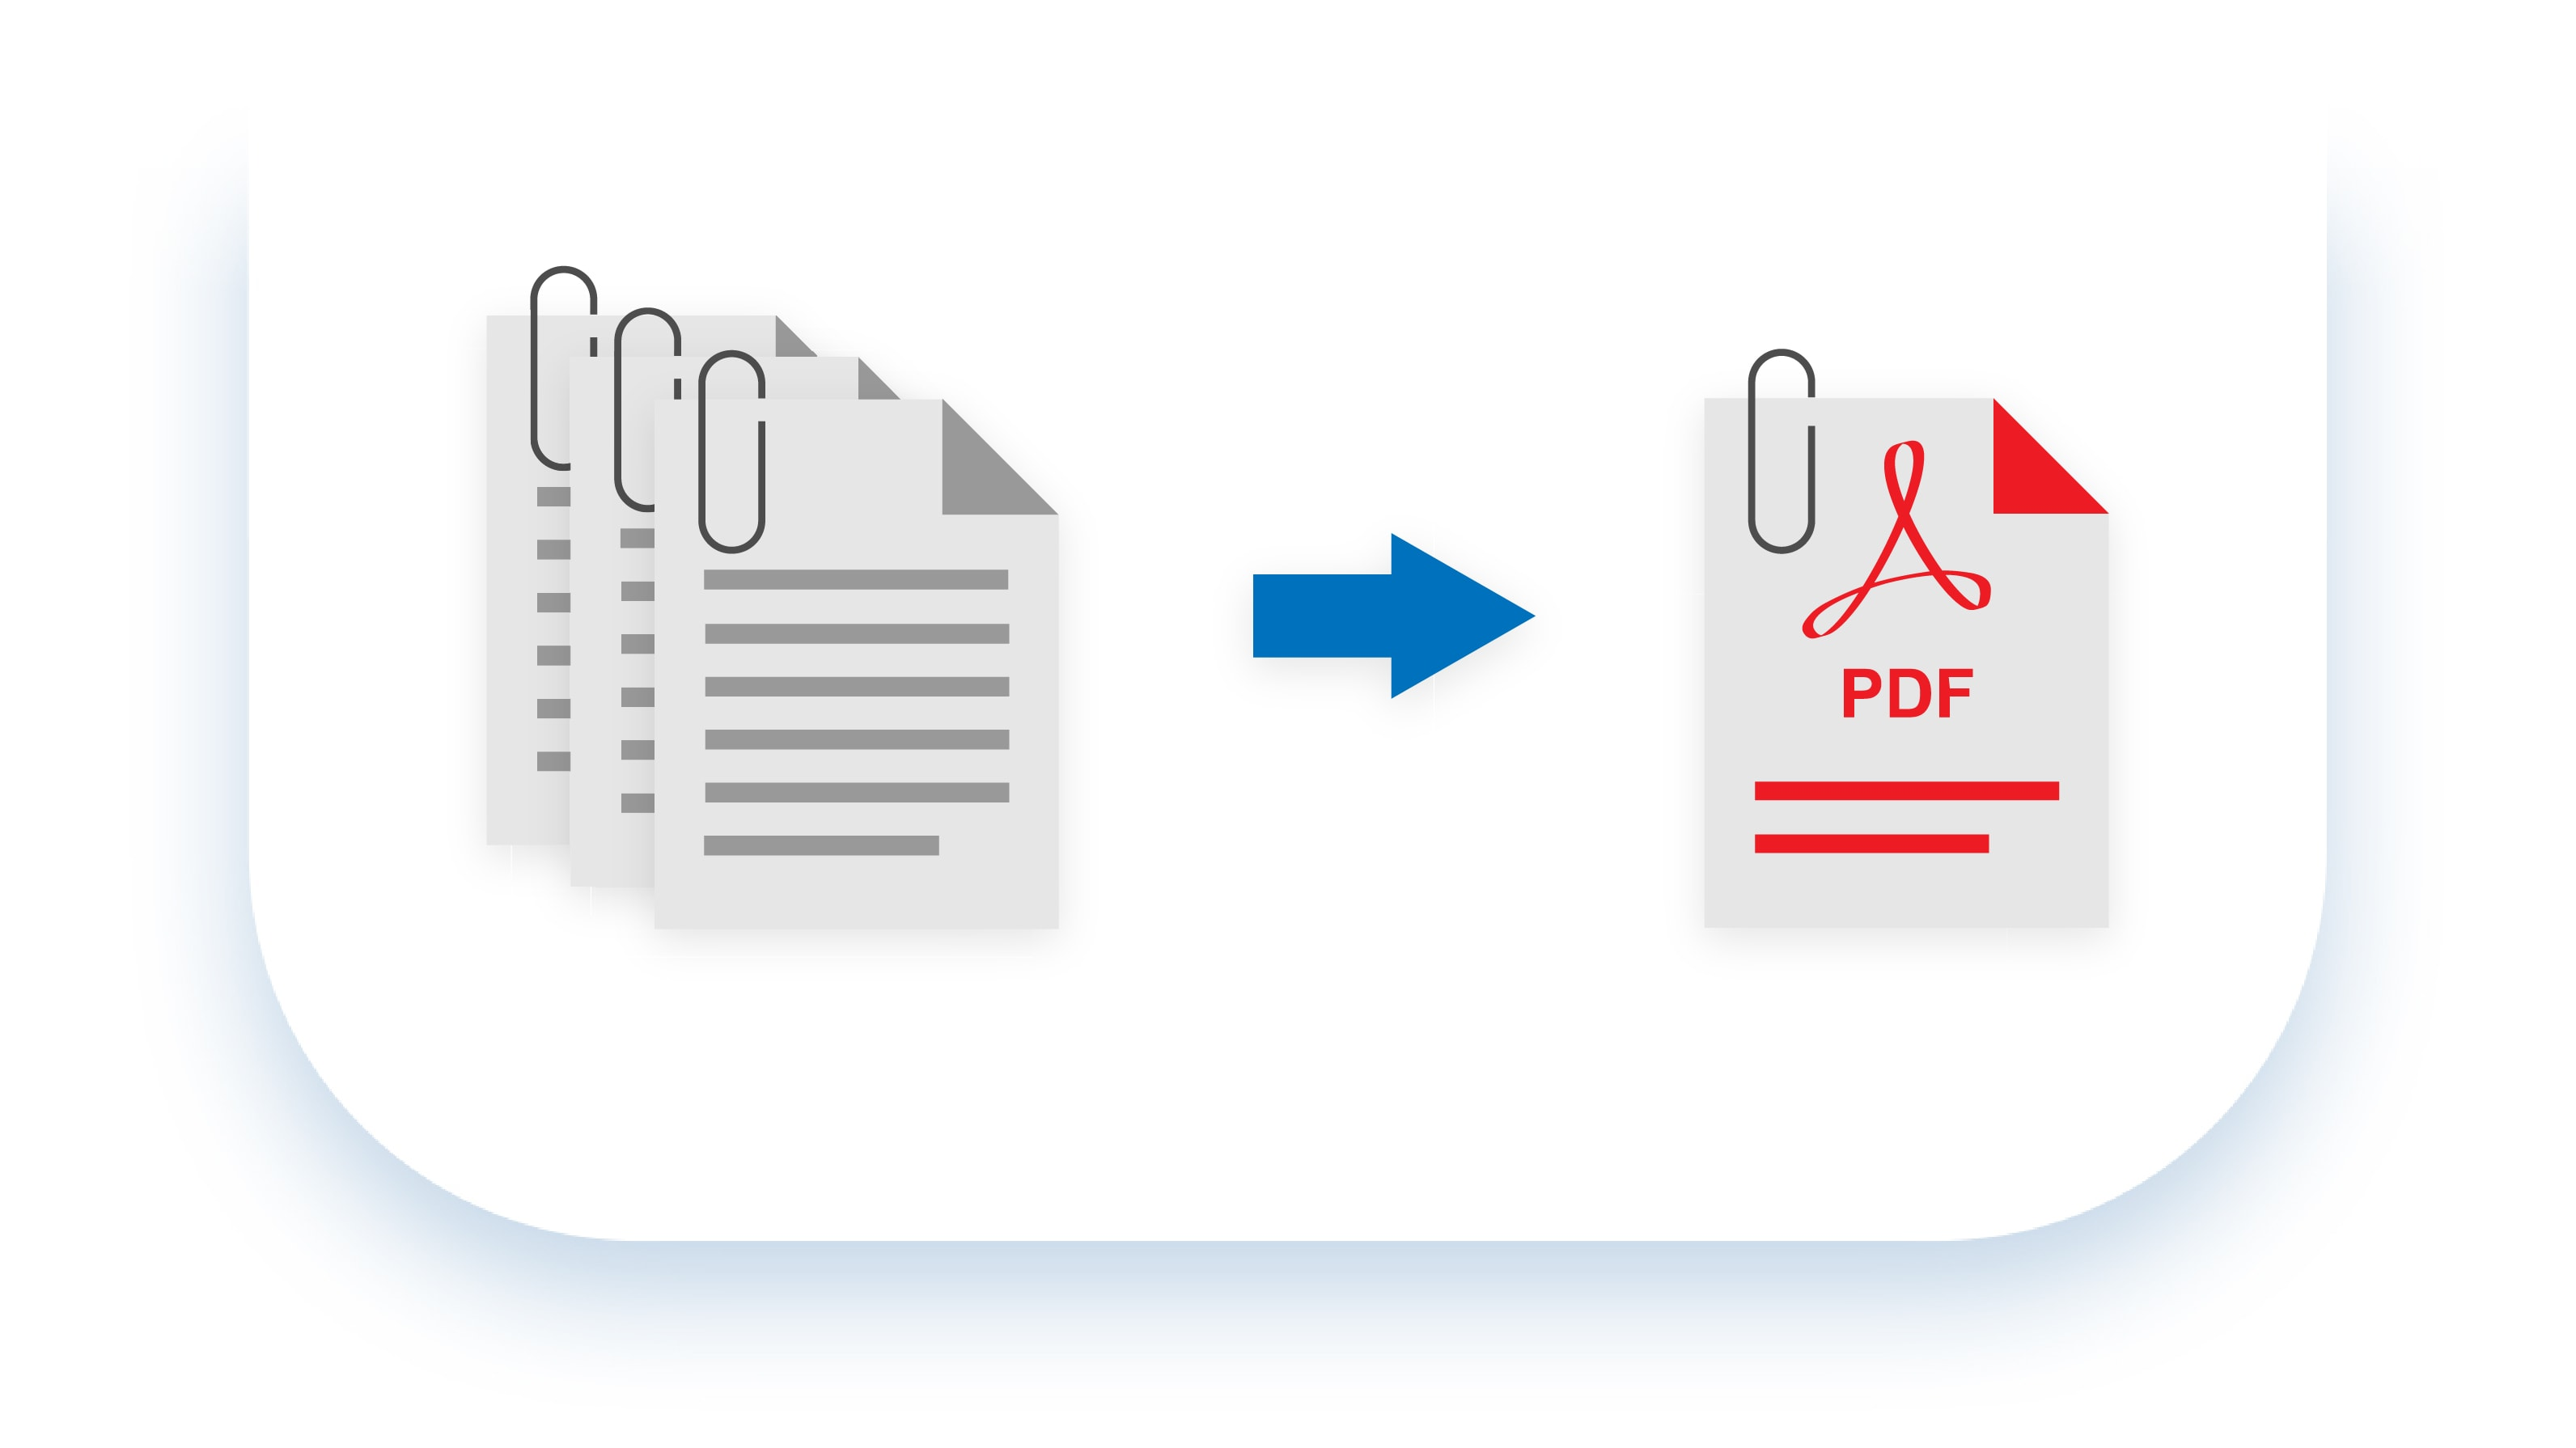 merge documents, convert into a .PDF file